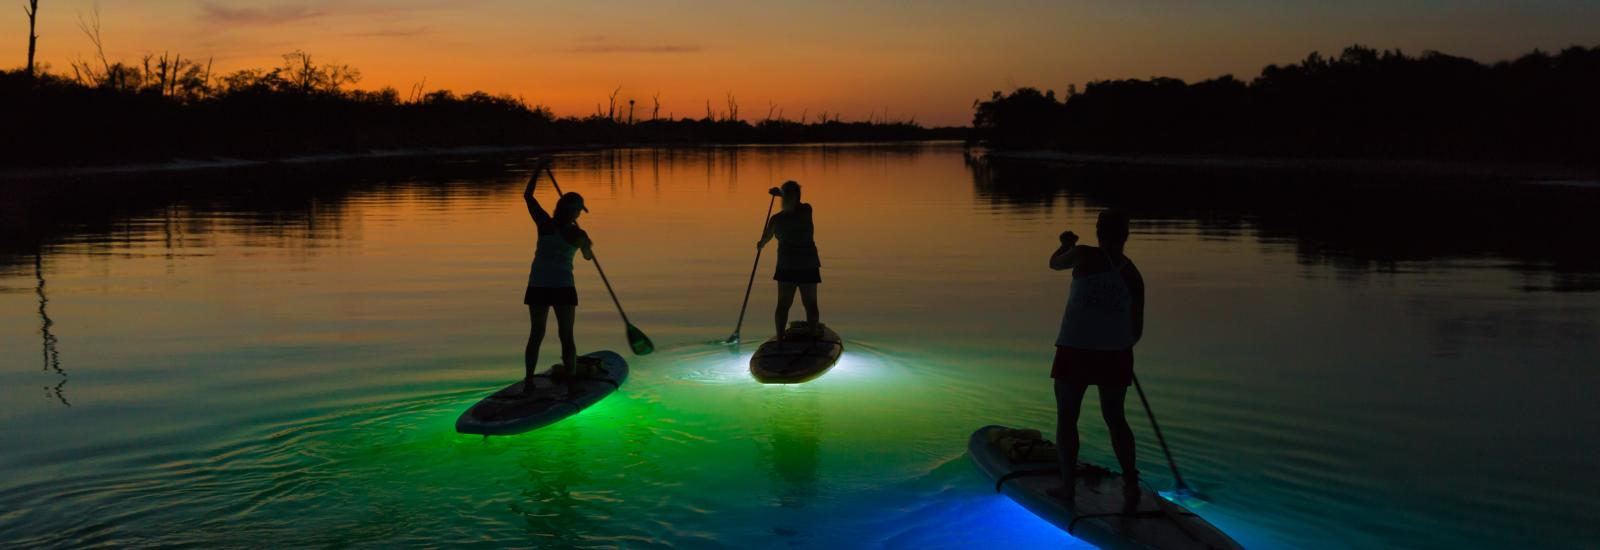 Lighted SUP